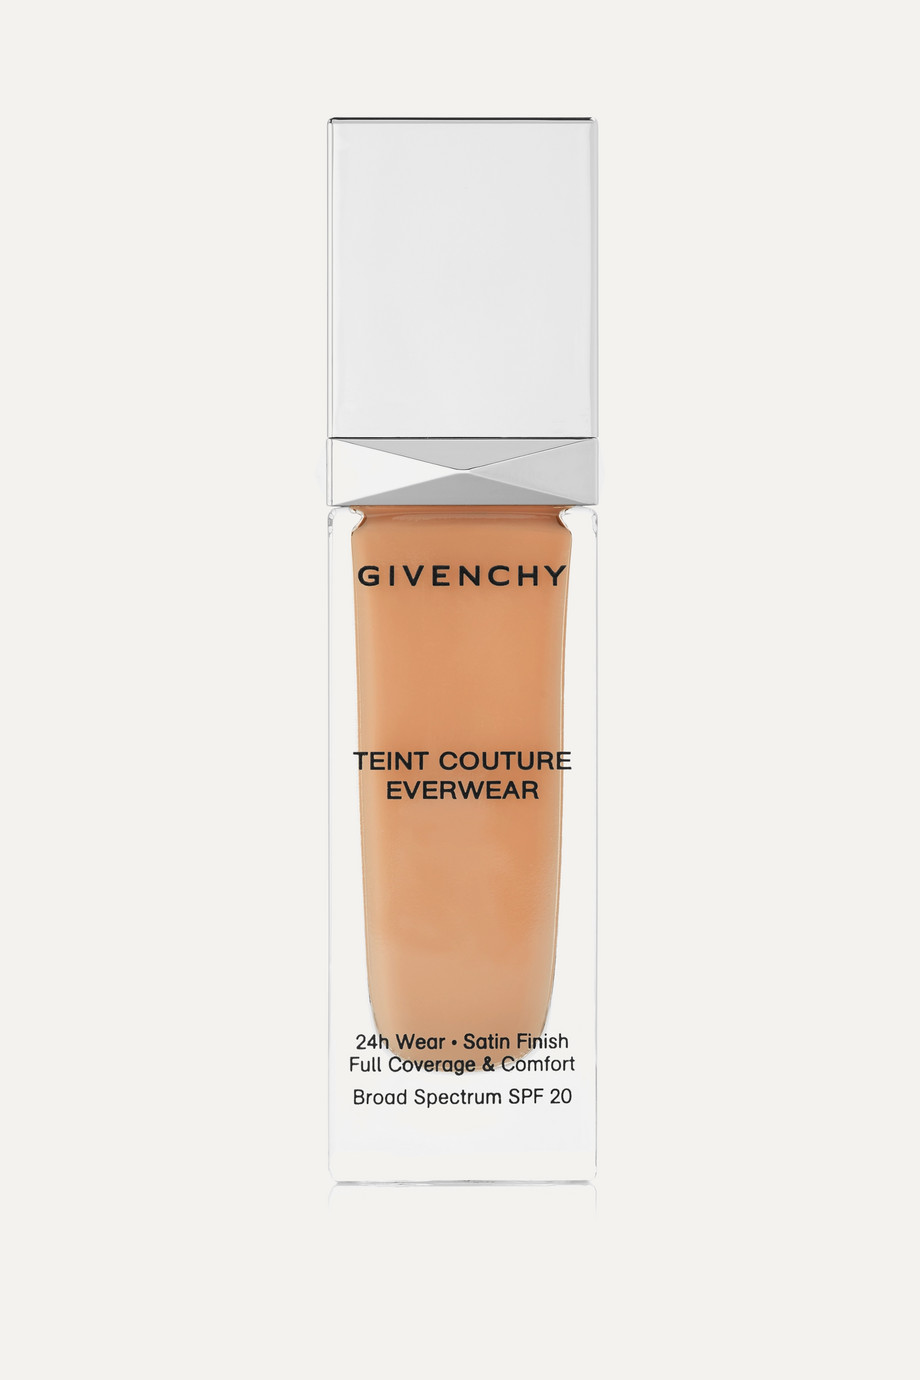 Givenchy Beauty Teint Couture Everwear Foundation SPF20 - P200, 30ml